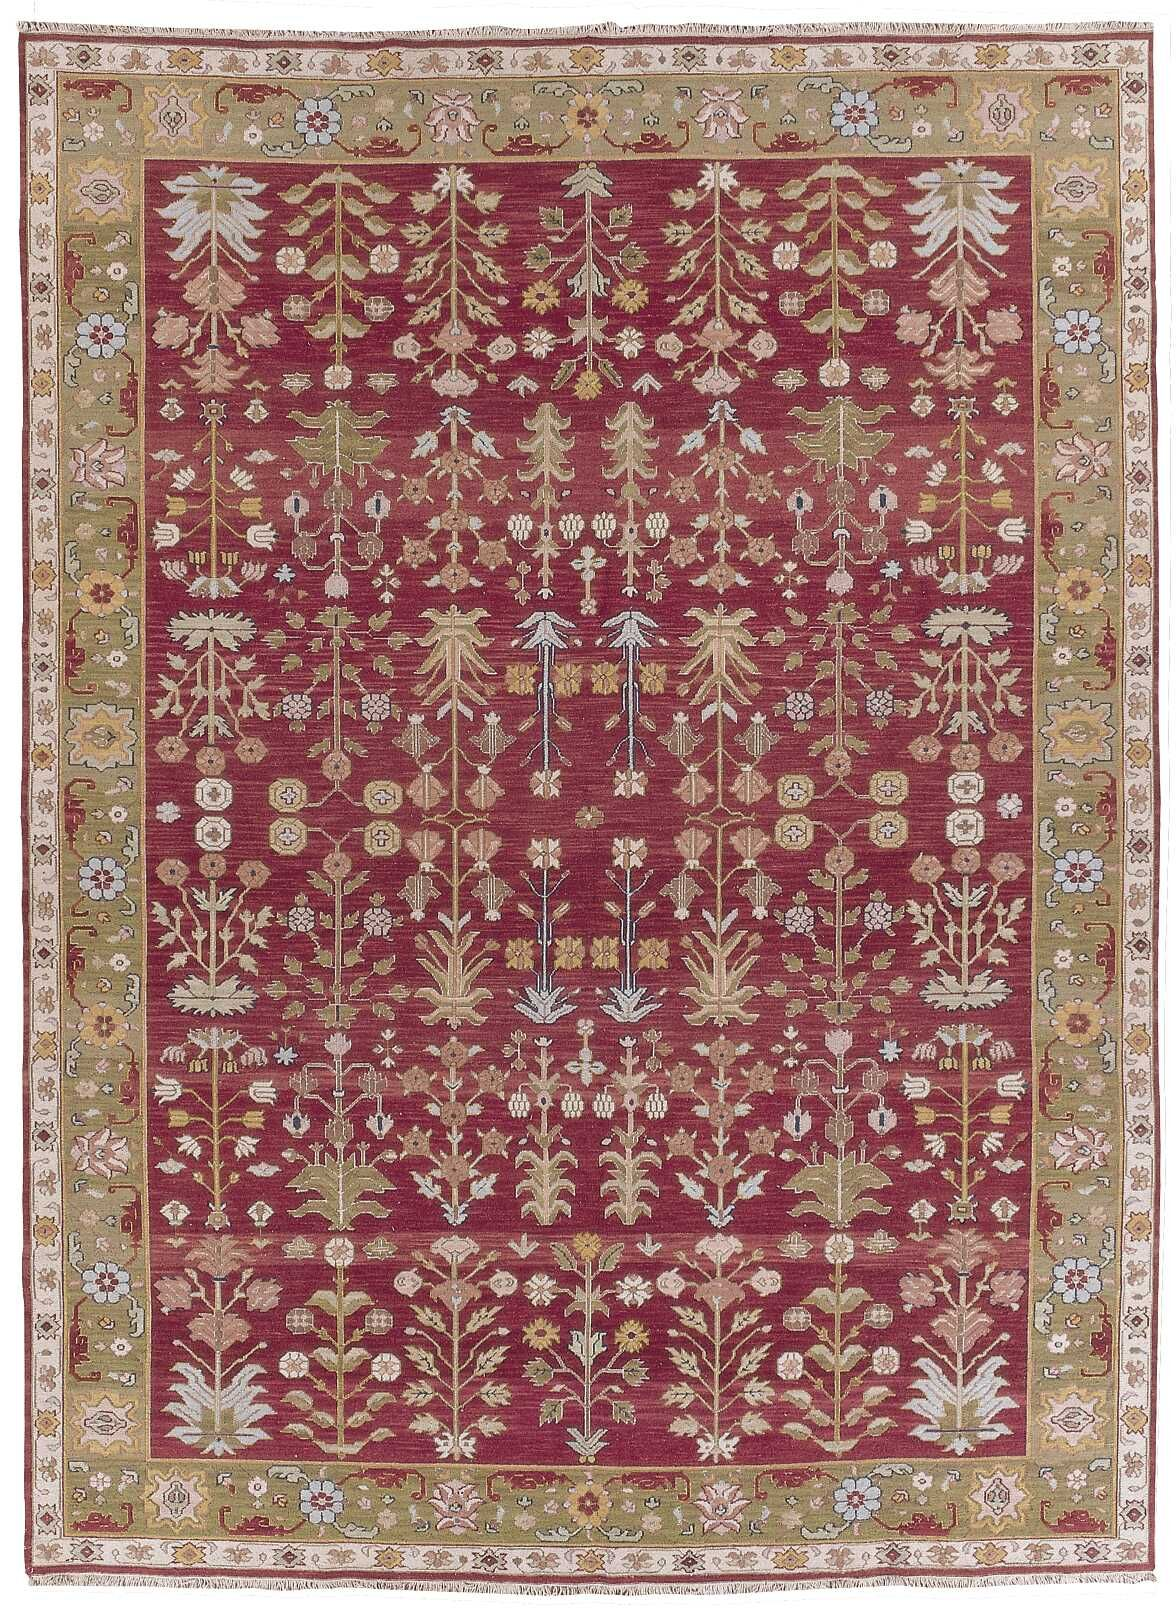 Prescot Hand-Woven Burgundy Area Rug Rug Size: Rectangle 8'10